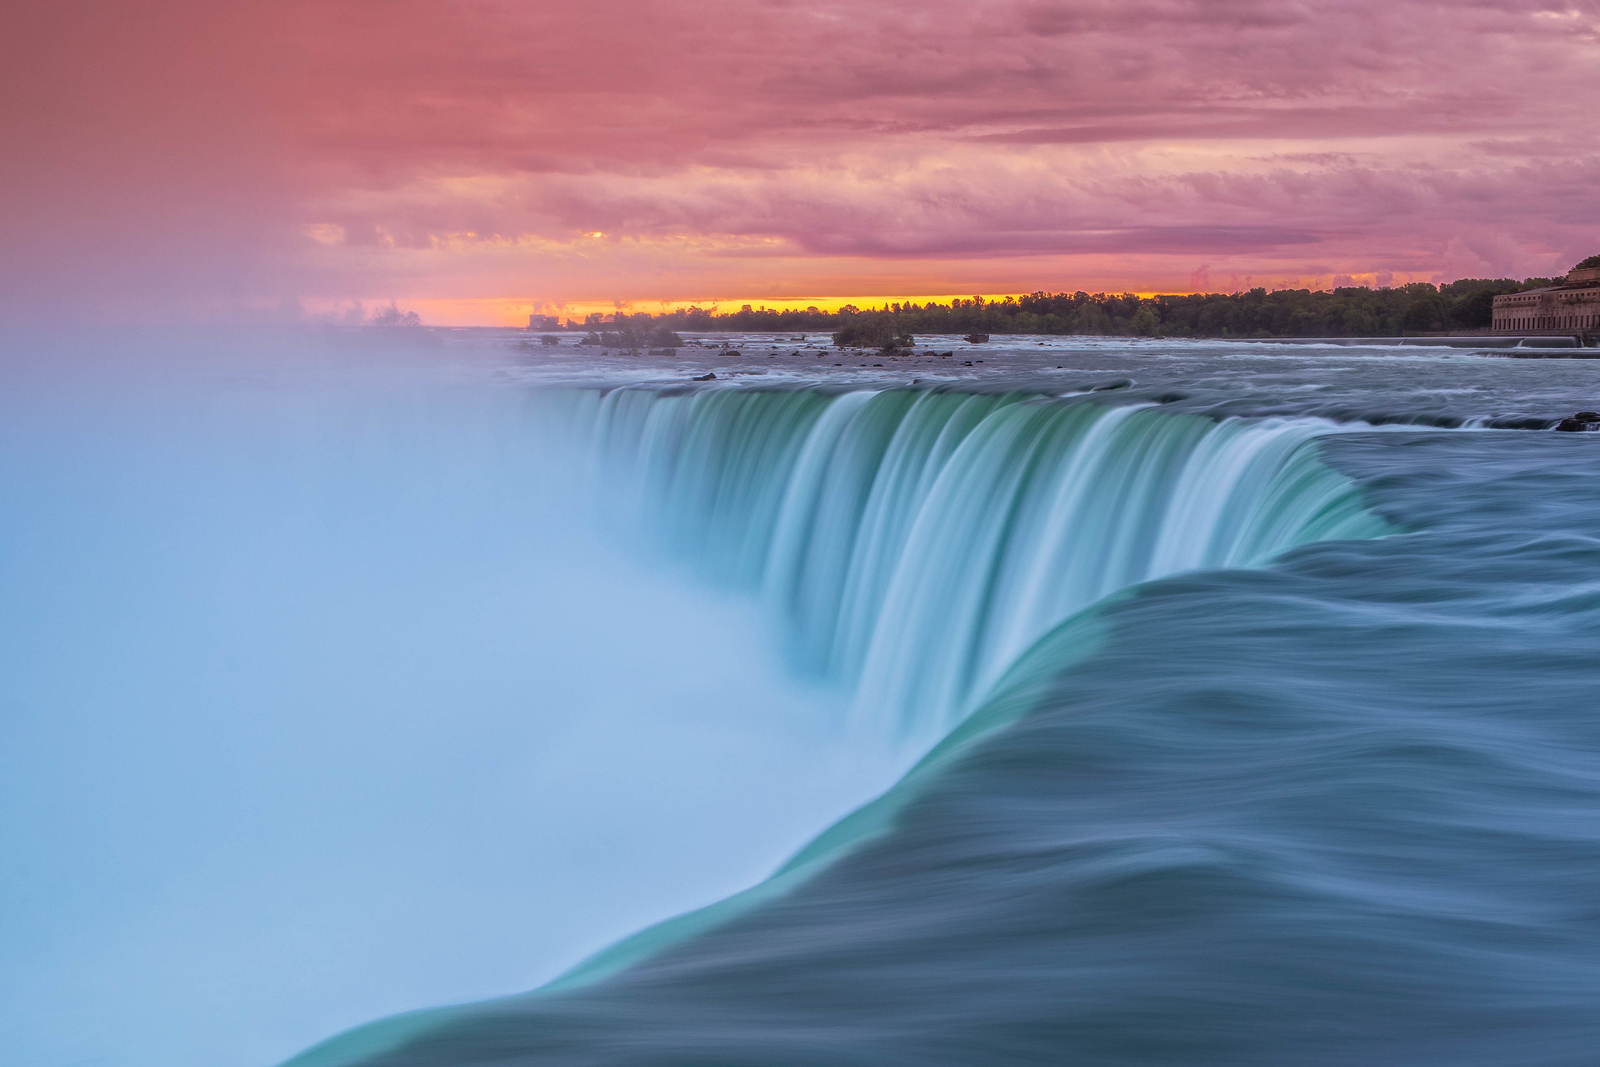 Sunrise at Niagara Falls, Canada